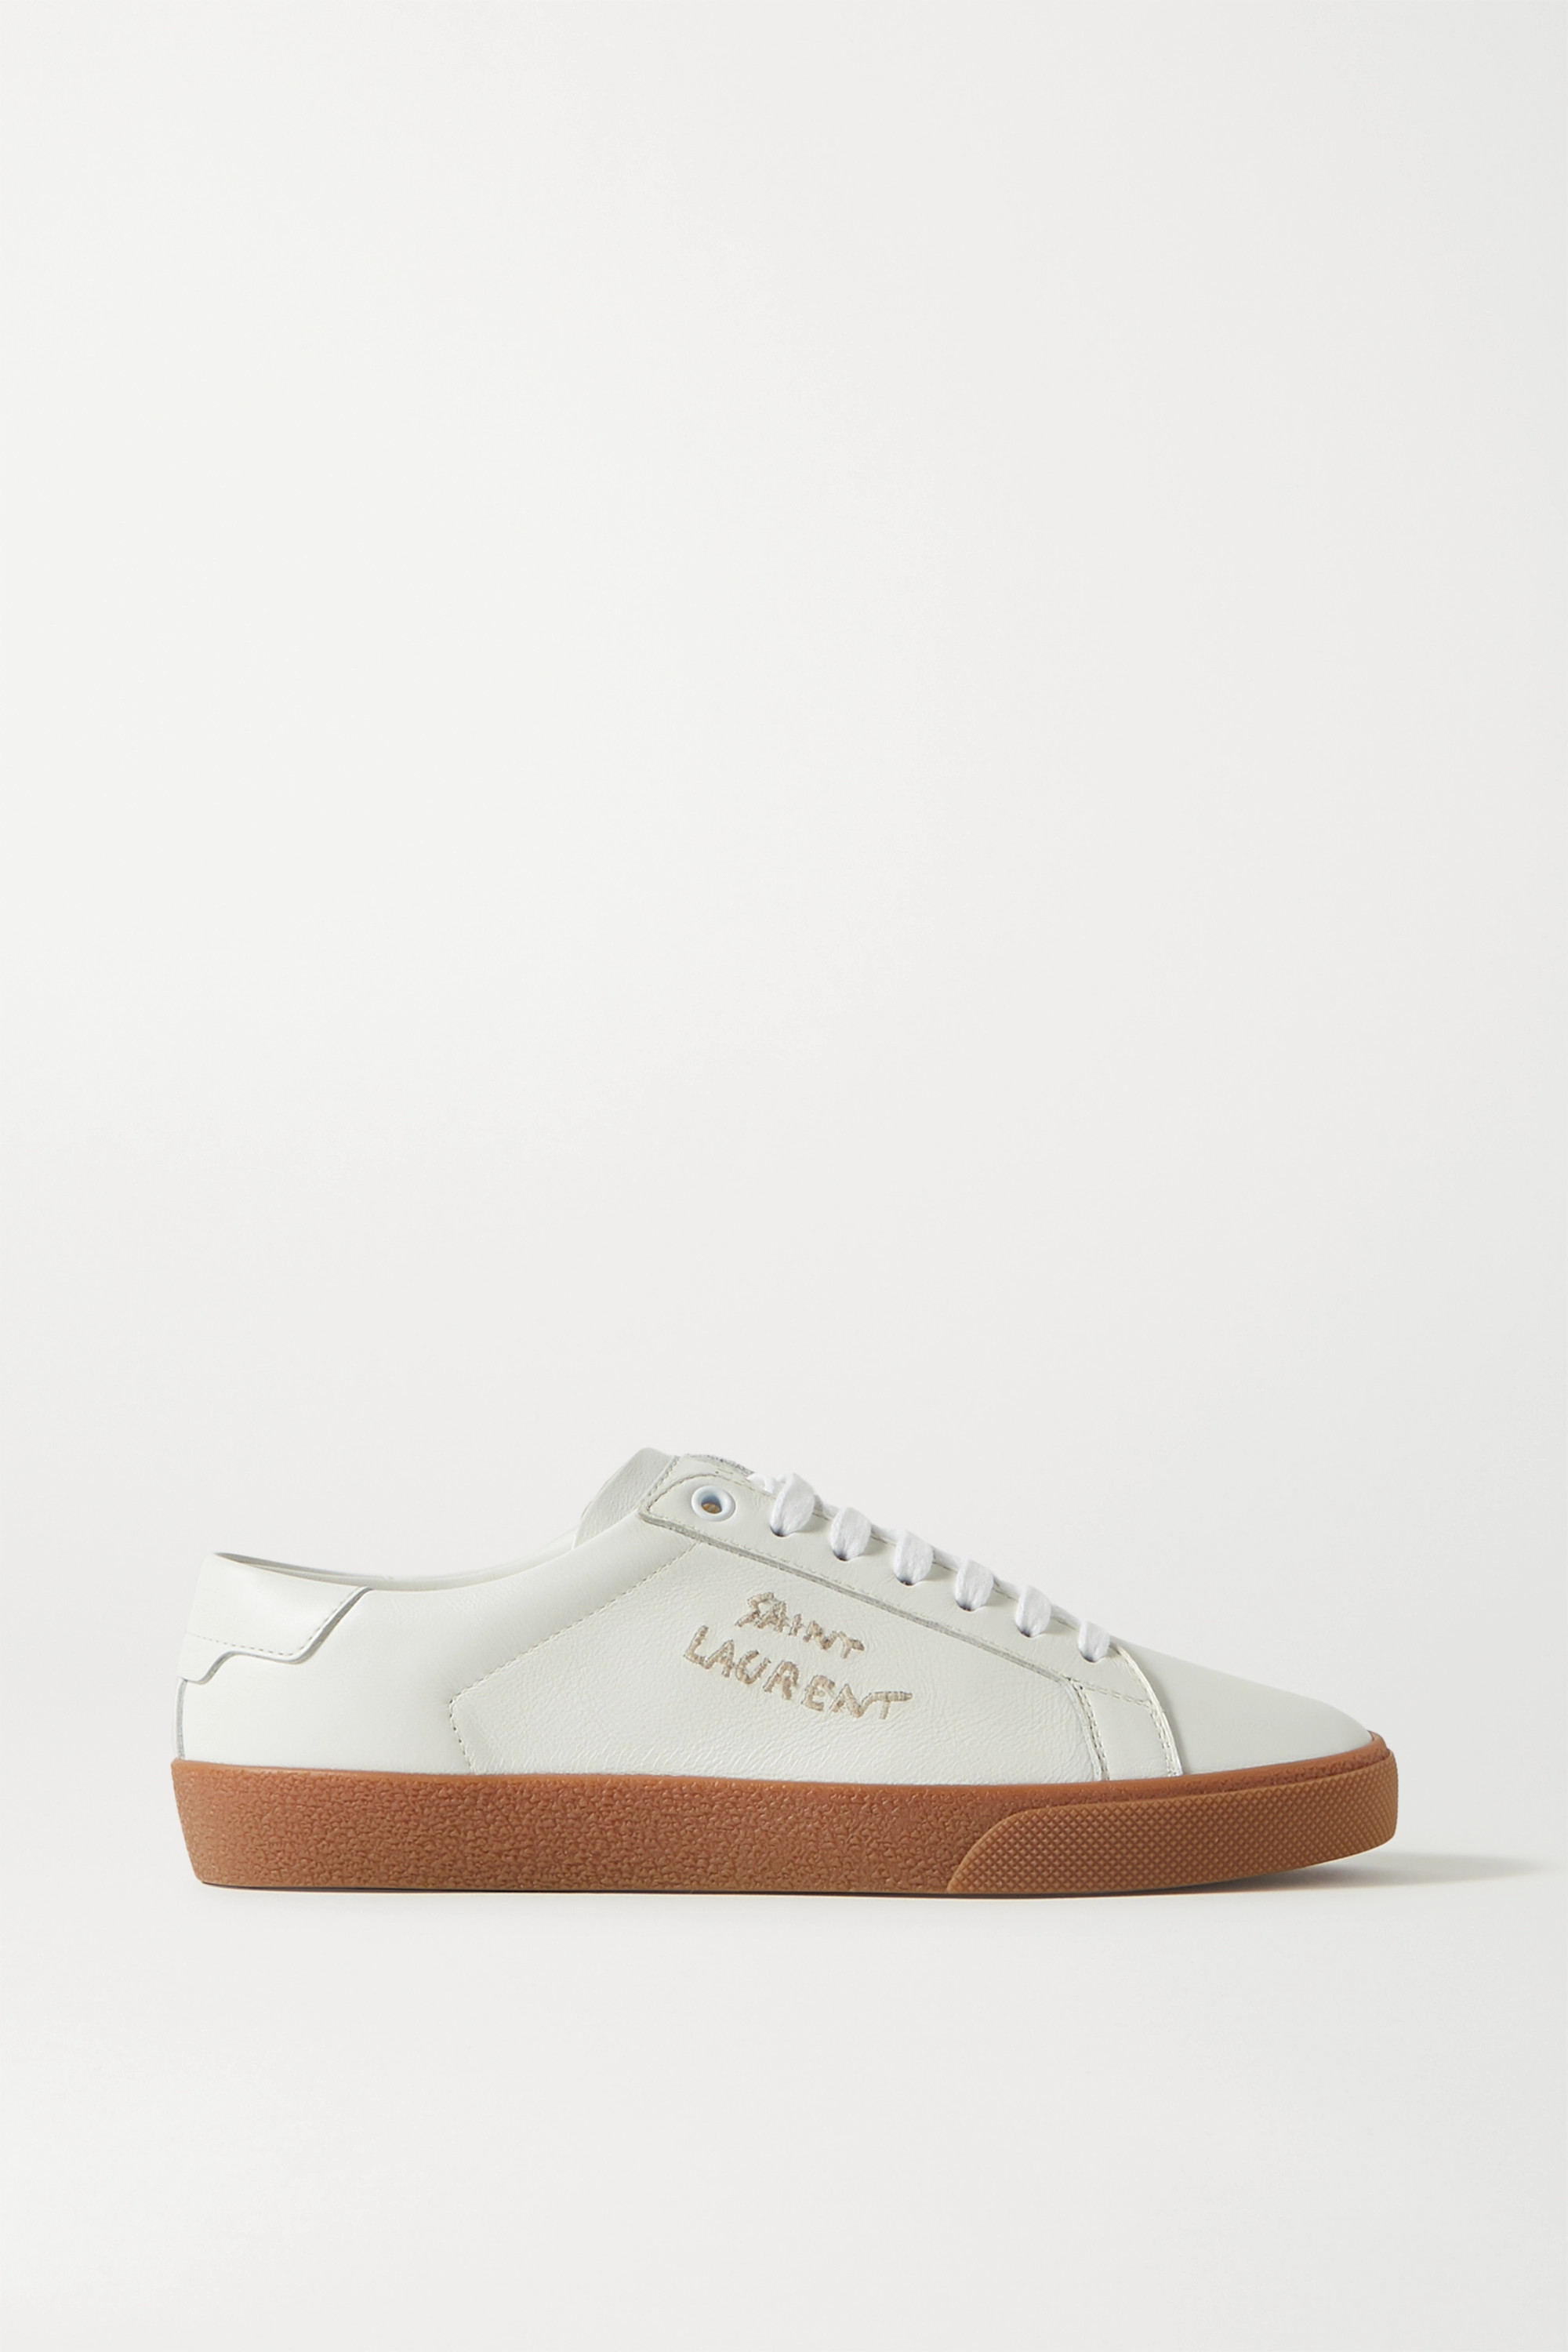 SAINT LAURENT Court Classic logo-embroidered leather sneakers